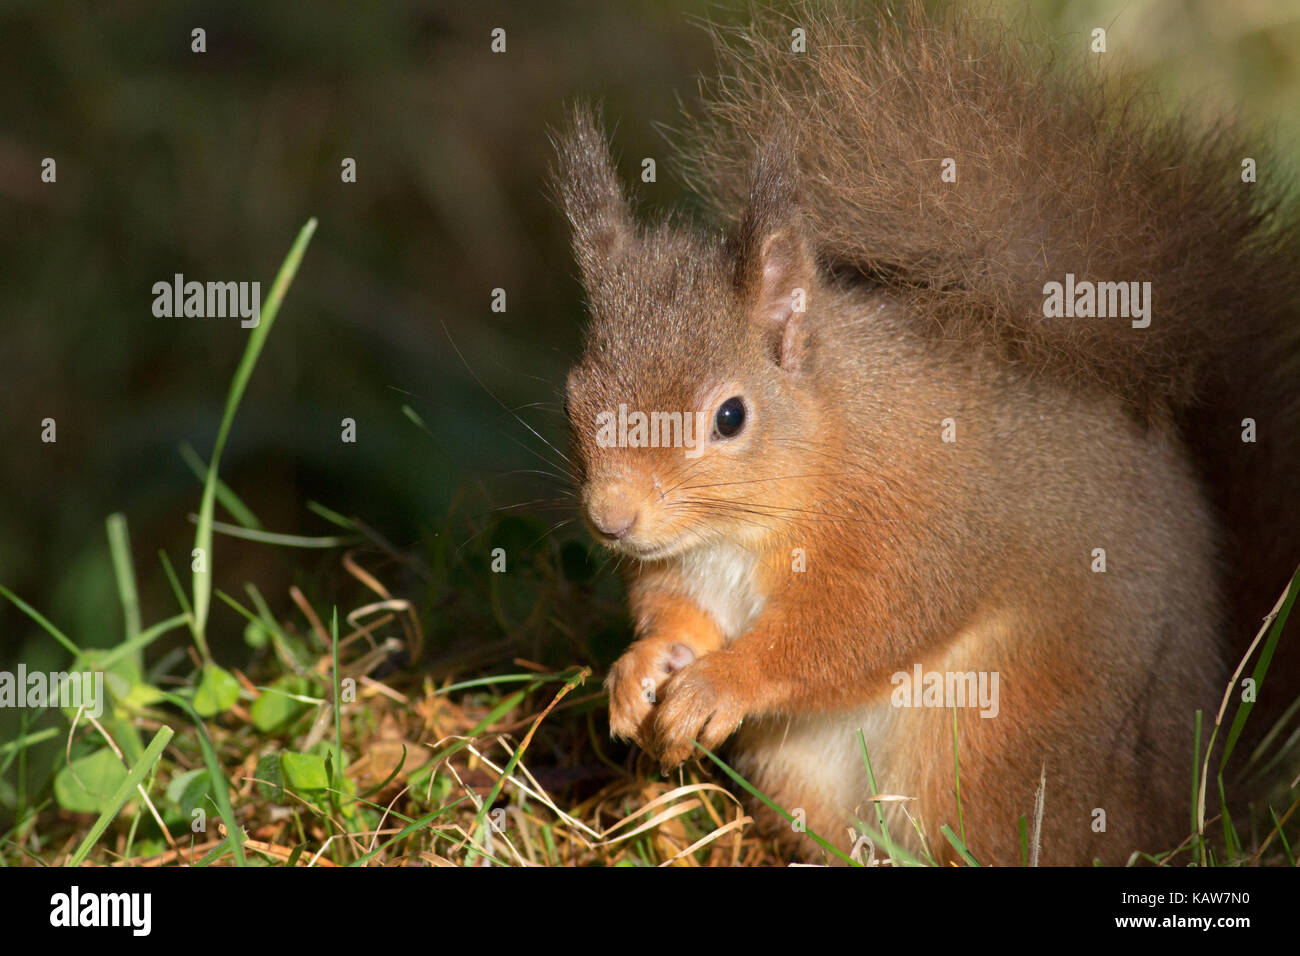 Red Squirrel (Sciurus vulgaris) in the forest, Highlands, Scotland, UK - Stock Image